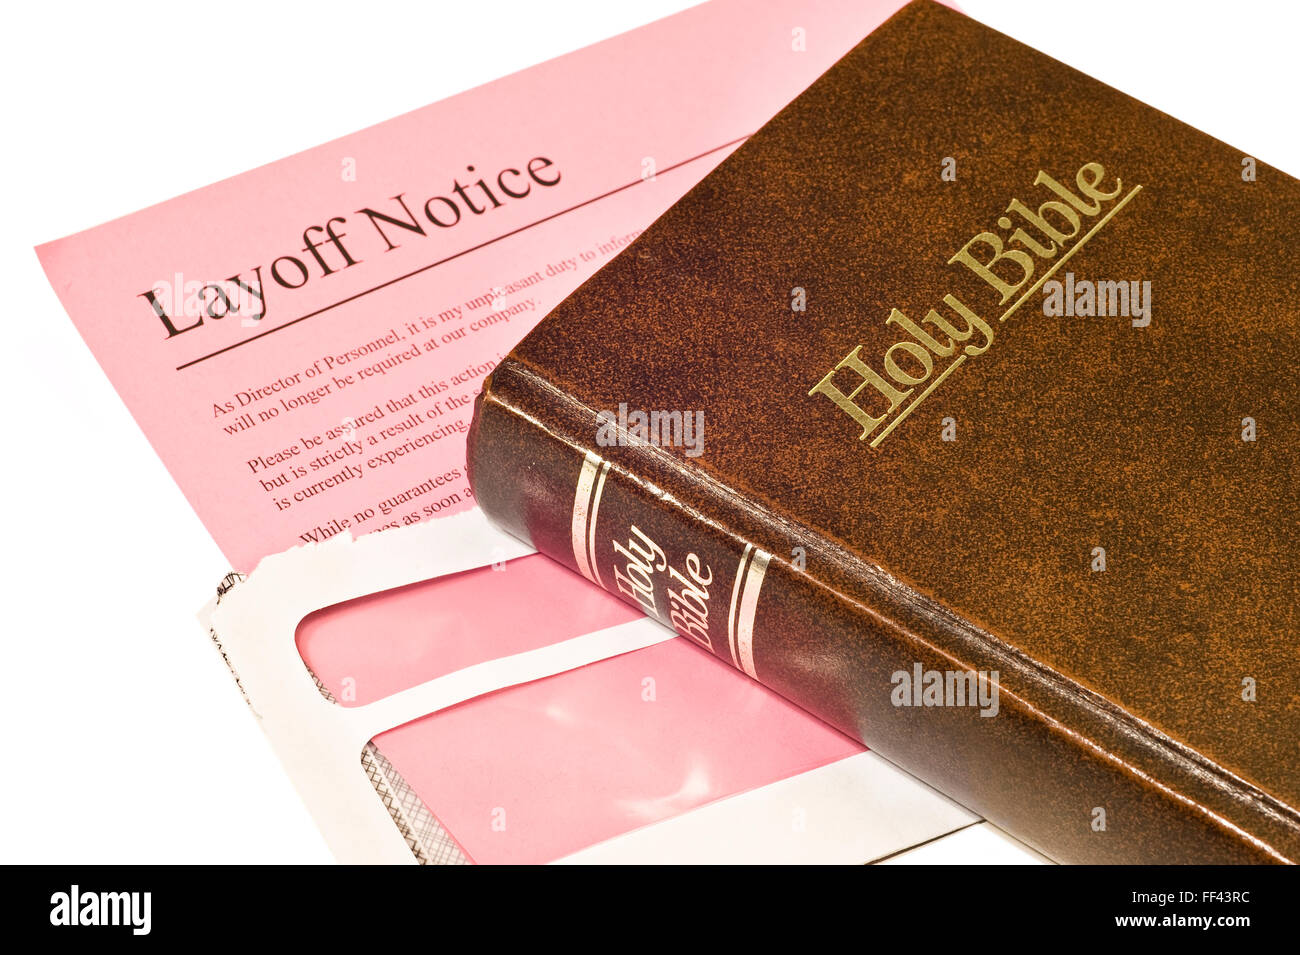 Layoff Notice and Bible Stock Photo